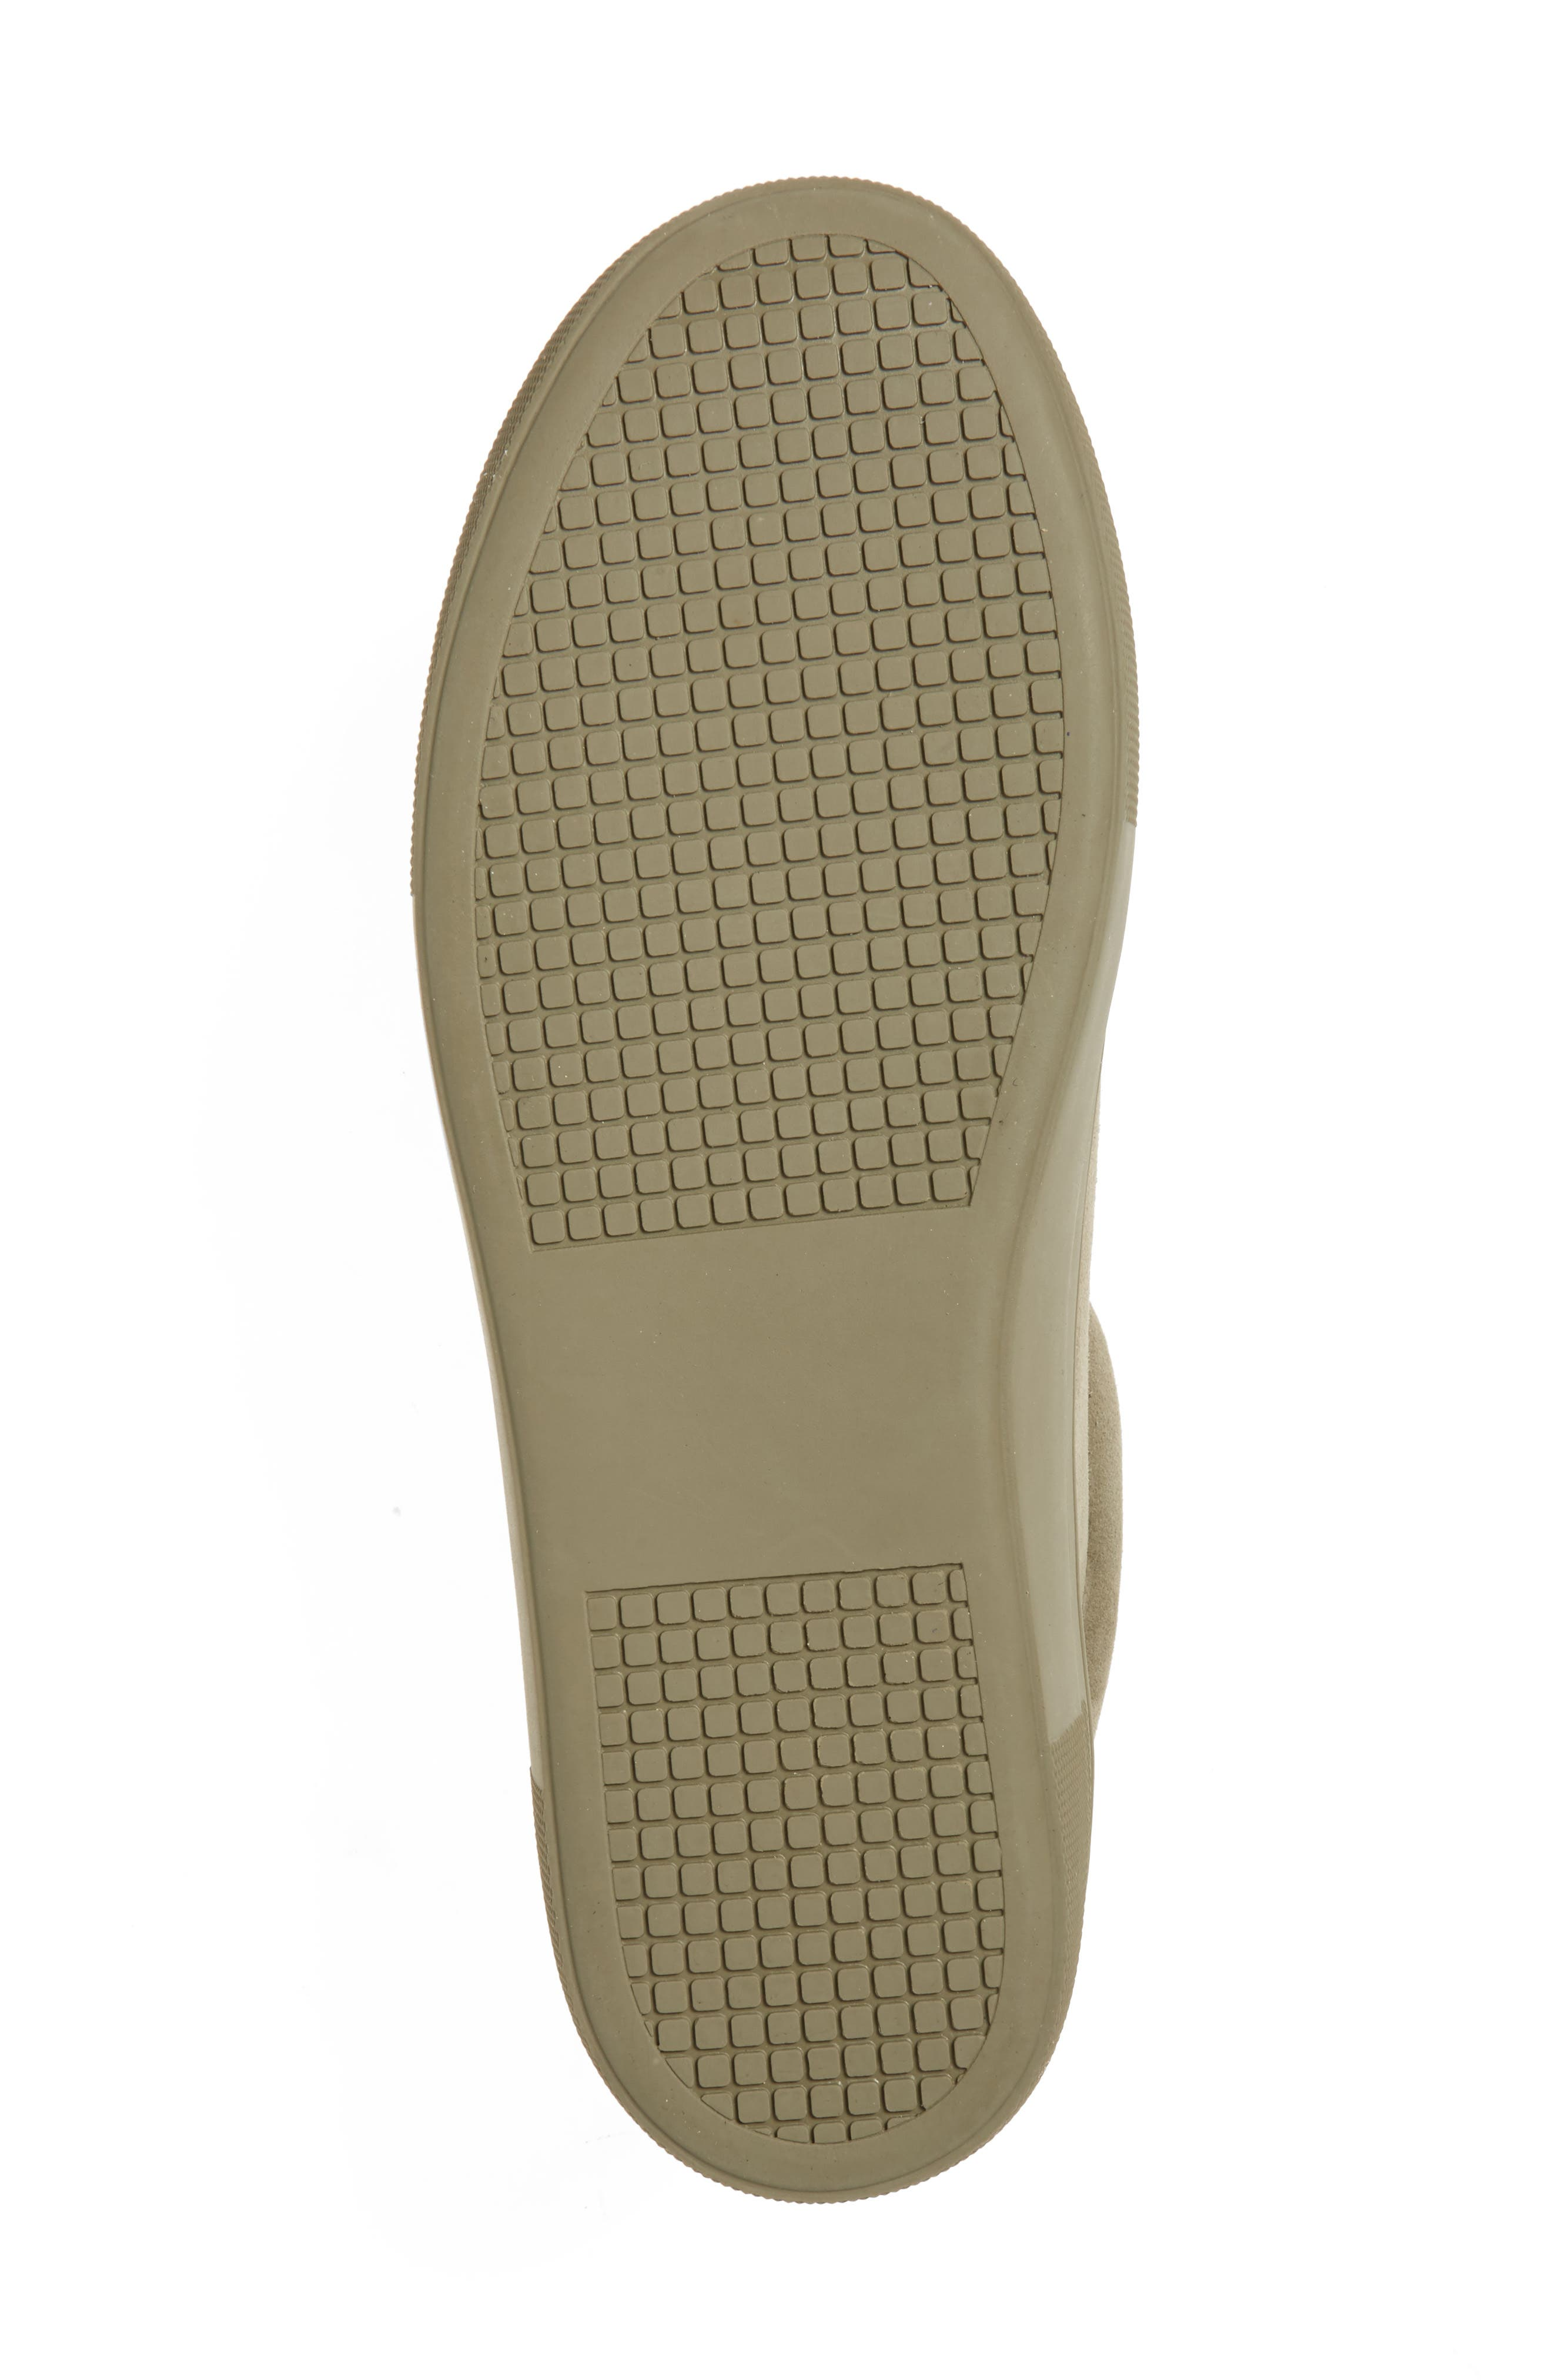 Gisela Low Top Sneaker,                             Alternate thumbnail 6, color,                             Olive Suede